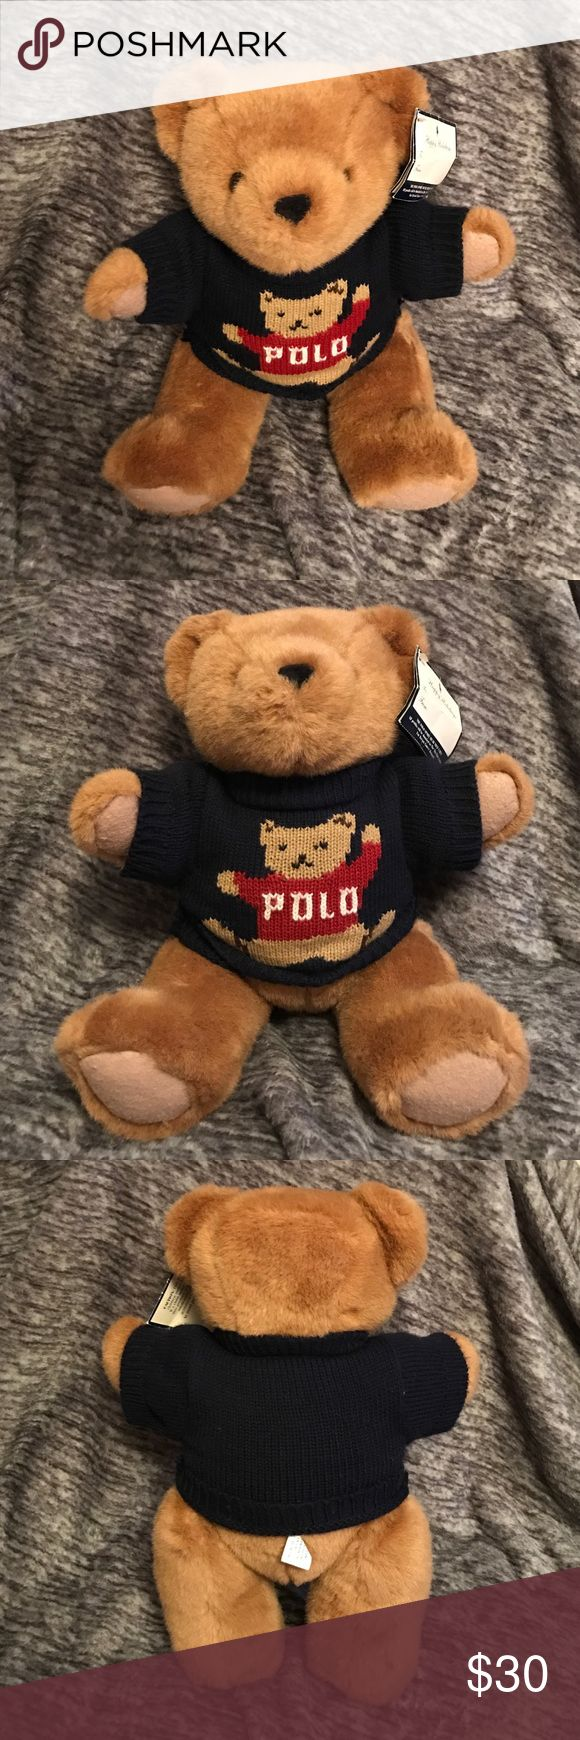 Ralph Lauren Polo Sport Teddy Bear w/ Sweater 16in 1997 NWT Polo Ralph Lauren Teddy Bear with Teddy Bear Sweater with Movable Legs. 16 inches tall. Tags are slightly dirty. Polo by Ralph Lauren Other